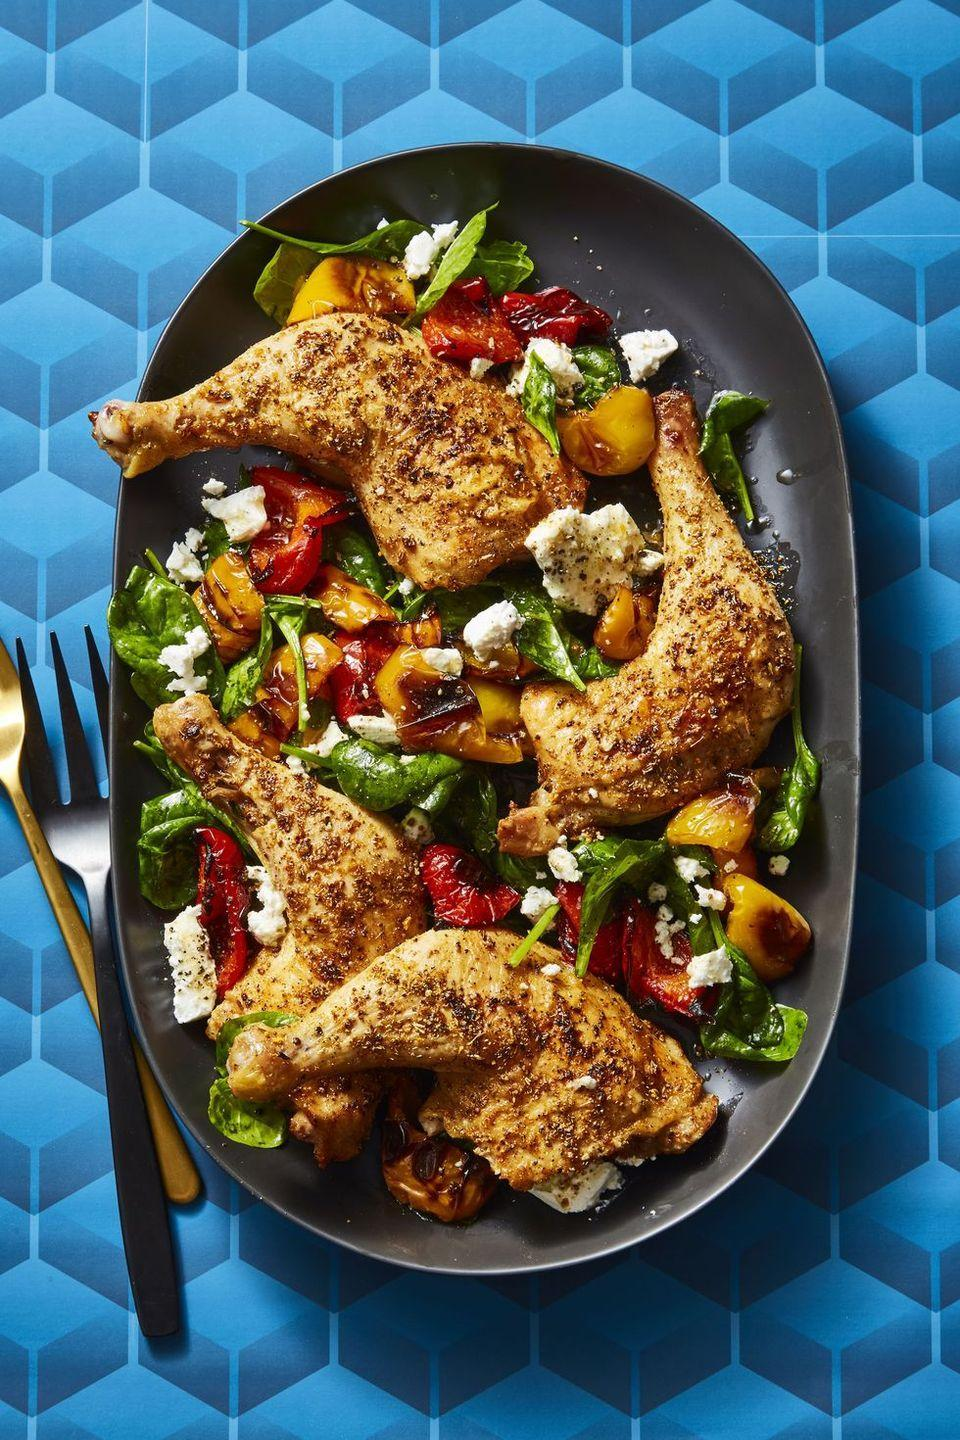 "<p>This recipe makes extra roasted bell peppers that you can add to a salad or omelette the day next — so smart.</p><p><em><a href=""https://www.goodhousekeeping.com/food-recipes/easy/a25656846/fennel-roasted-chicken-and-peppers-recipe/"" rel=""nofollow noopener"" target=""_blank"" data-ylk=""slk:Get the recipe for Fennel Roasted Chicken and Peppers »"" class=""link rapid-noclick-resp"">Get the recipe for Fennel Roasted Chicken and Peppers »</a></em></p>"